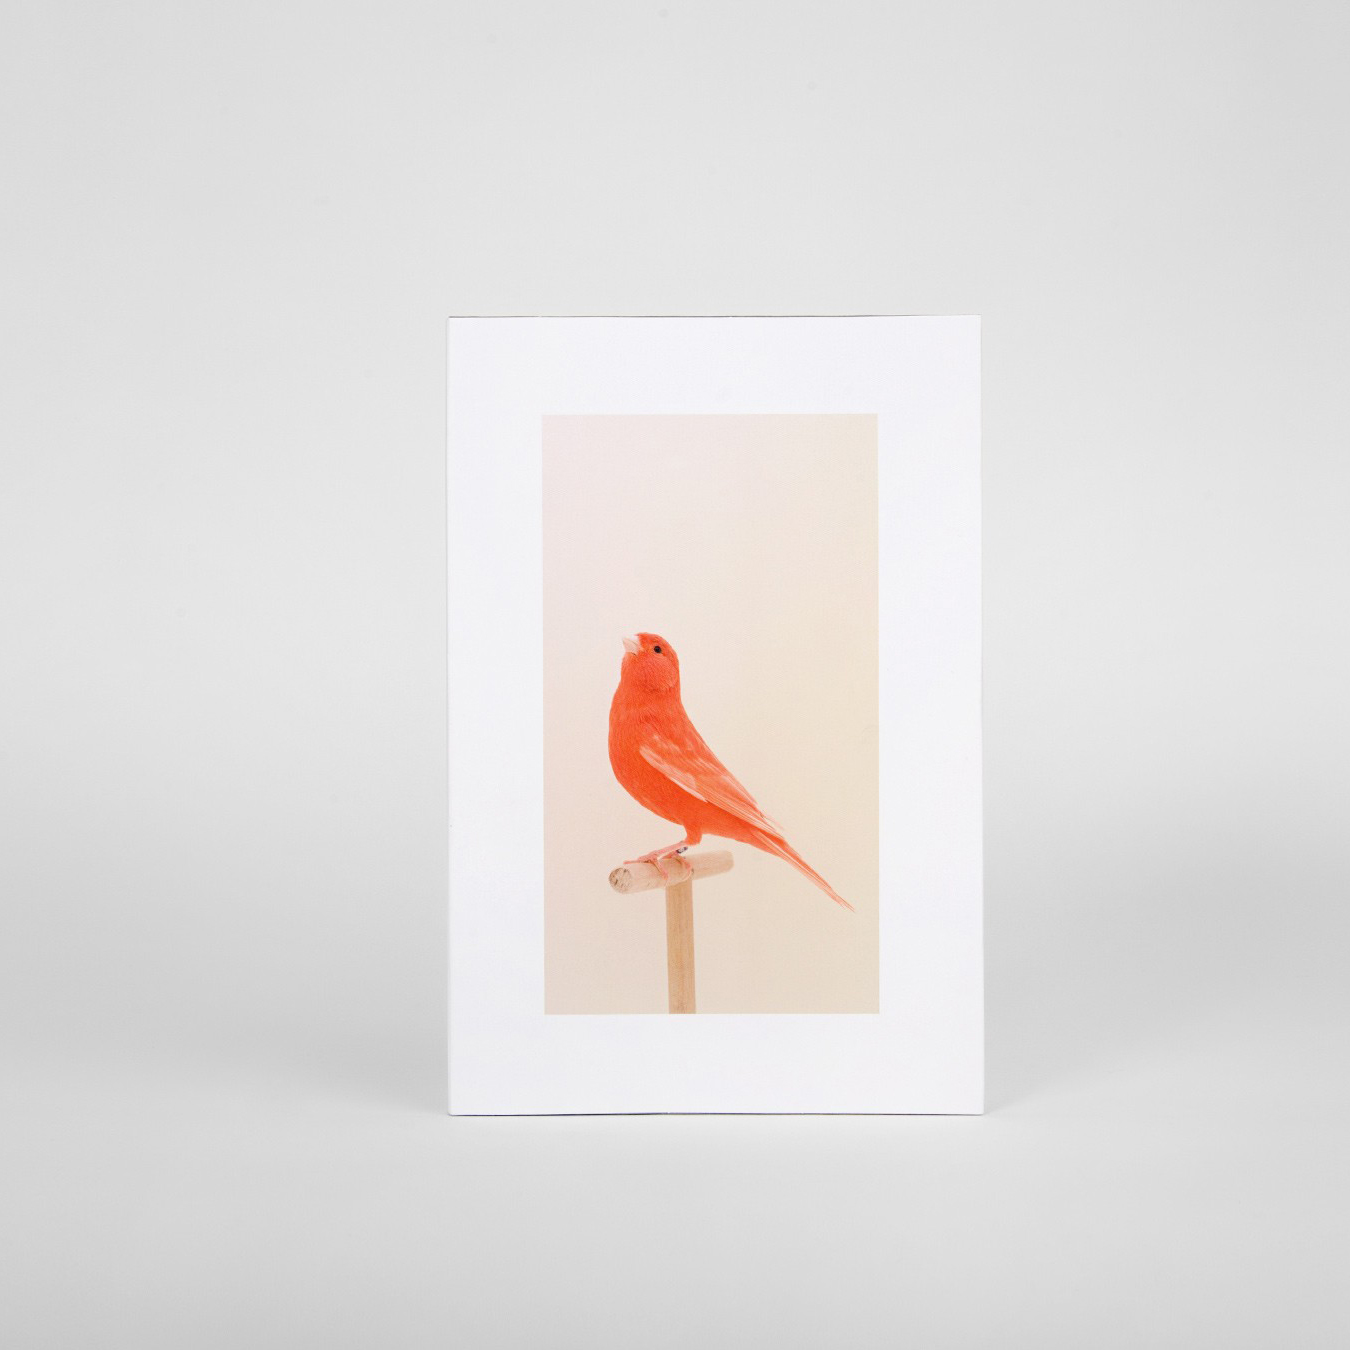 An Incomplete Dictionary of Show Birds  by Luke Stephenson